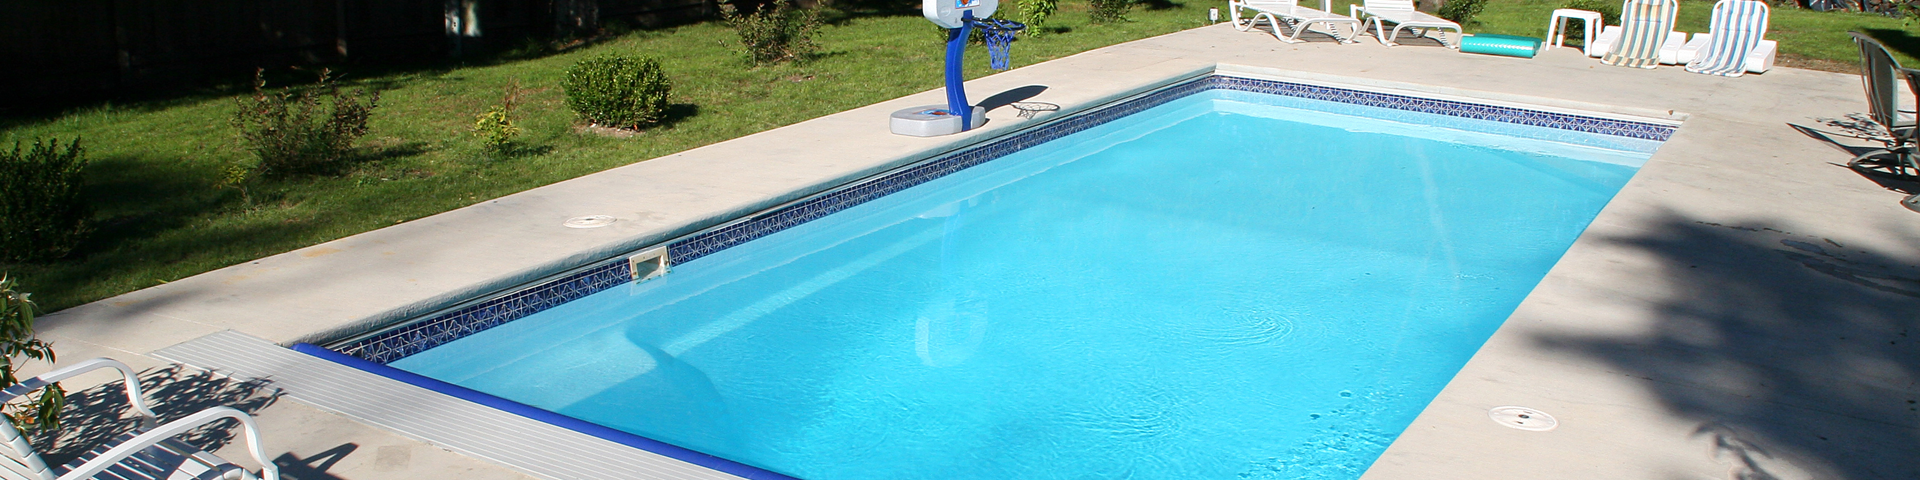 Rectangle fiberglass pools pro edge pools for Above ground fiberglass pools